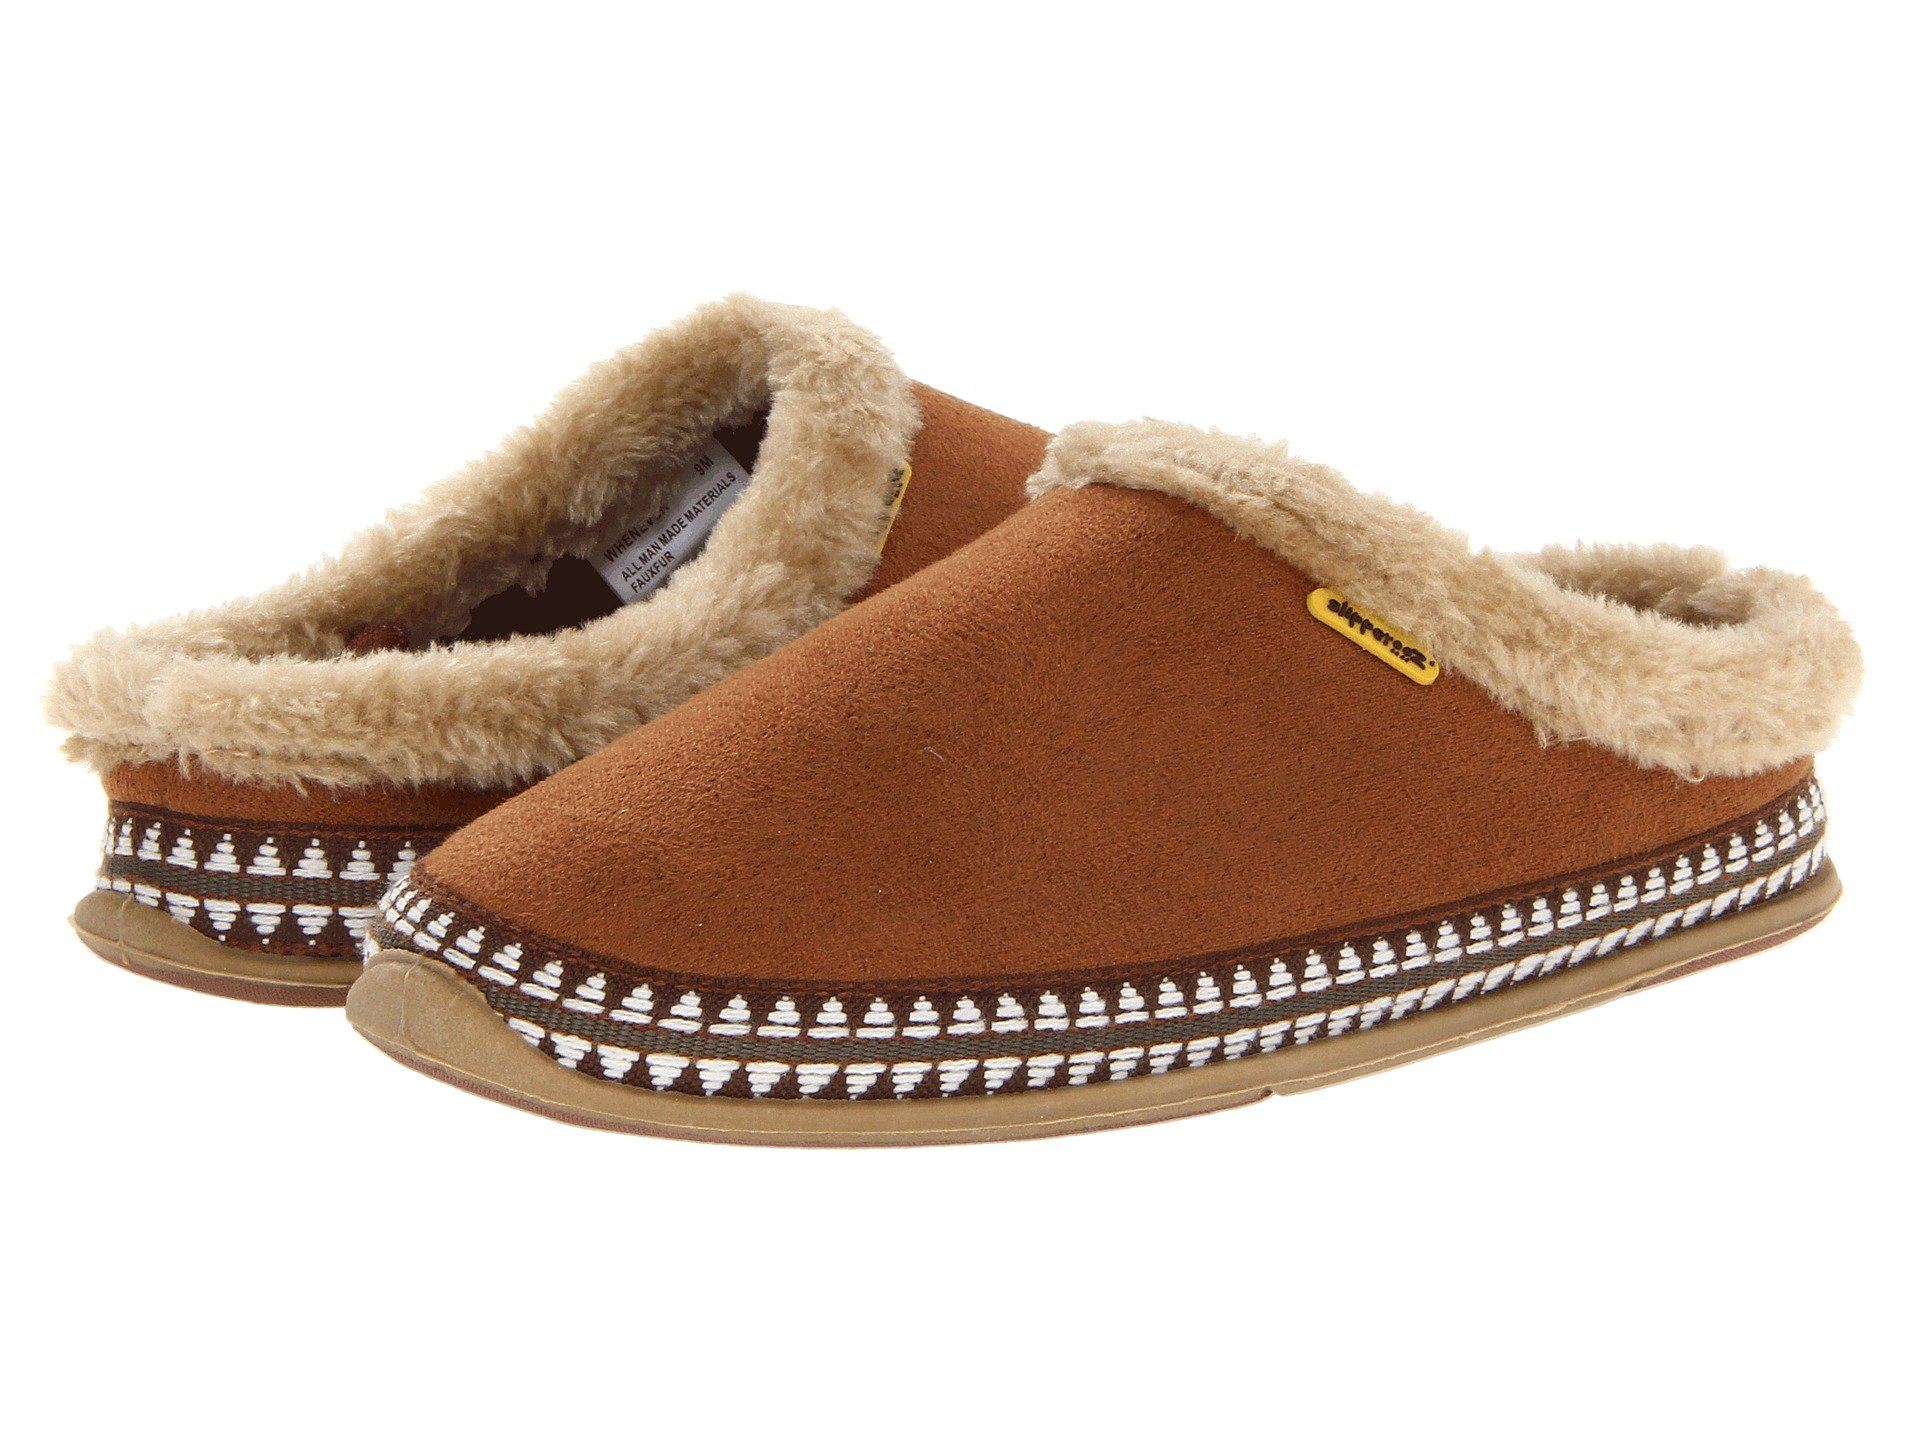 Whenever Deer Chestnut Slipper Whenever Stags Deer Deer Stags Deer Slipper Whenever Chestnut Chestnut Stags Slipper 7qAqvwE